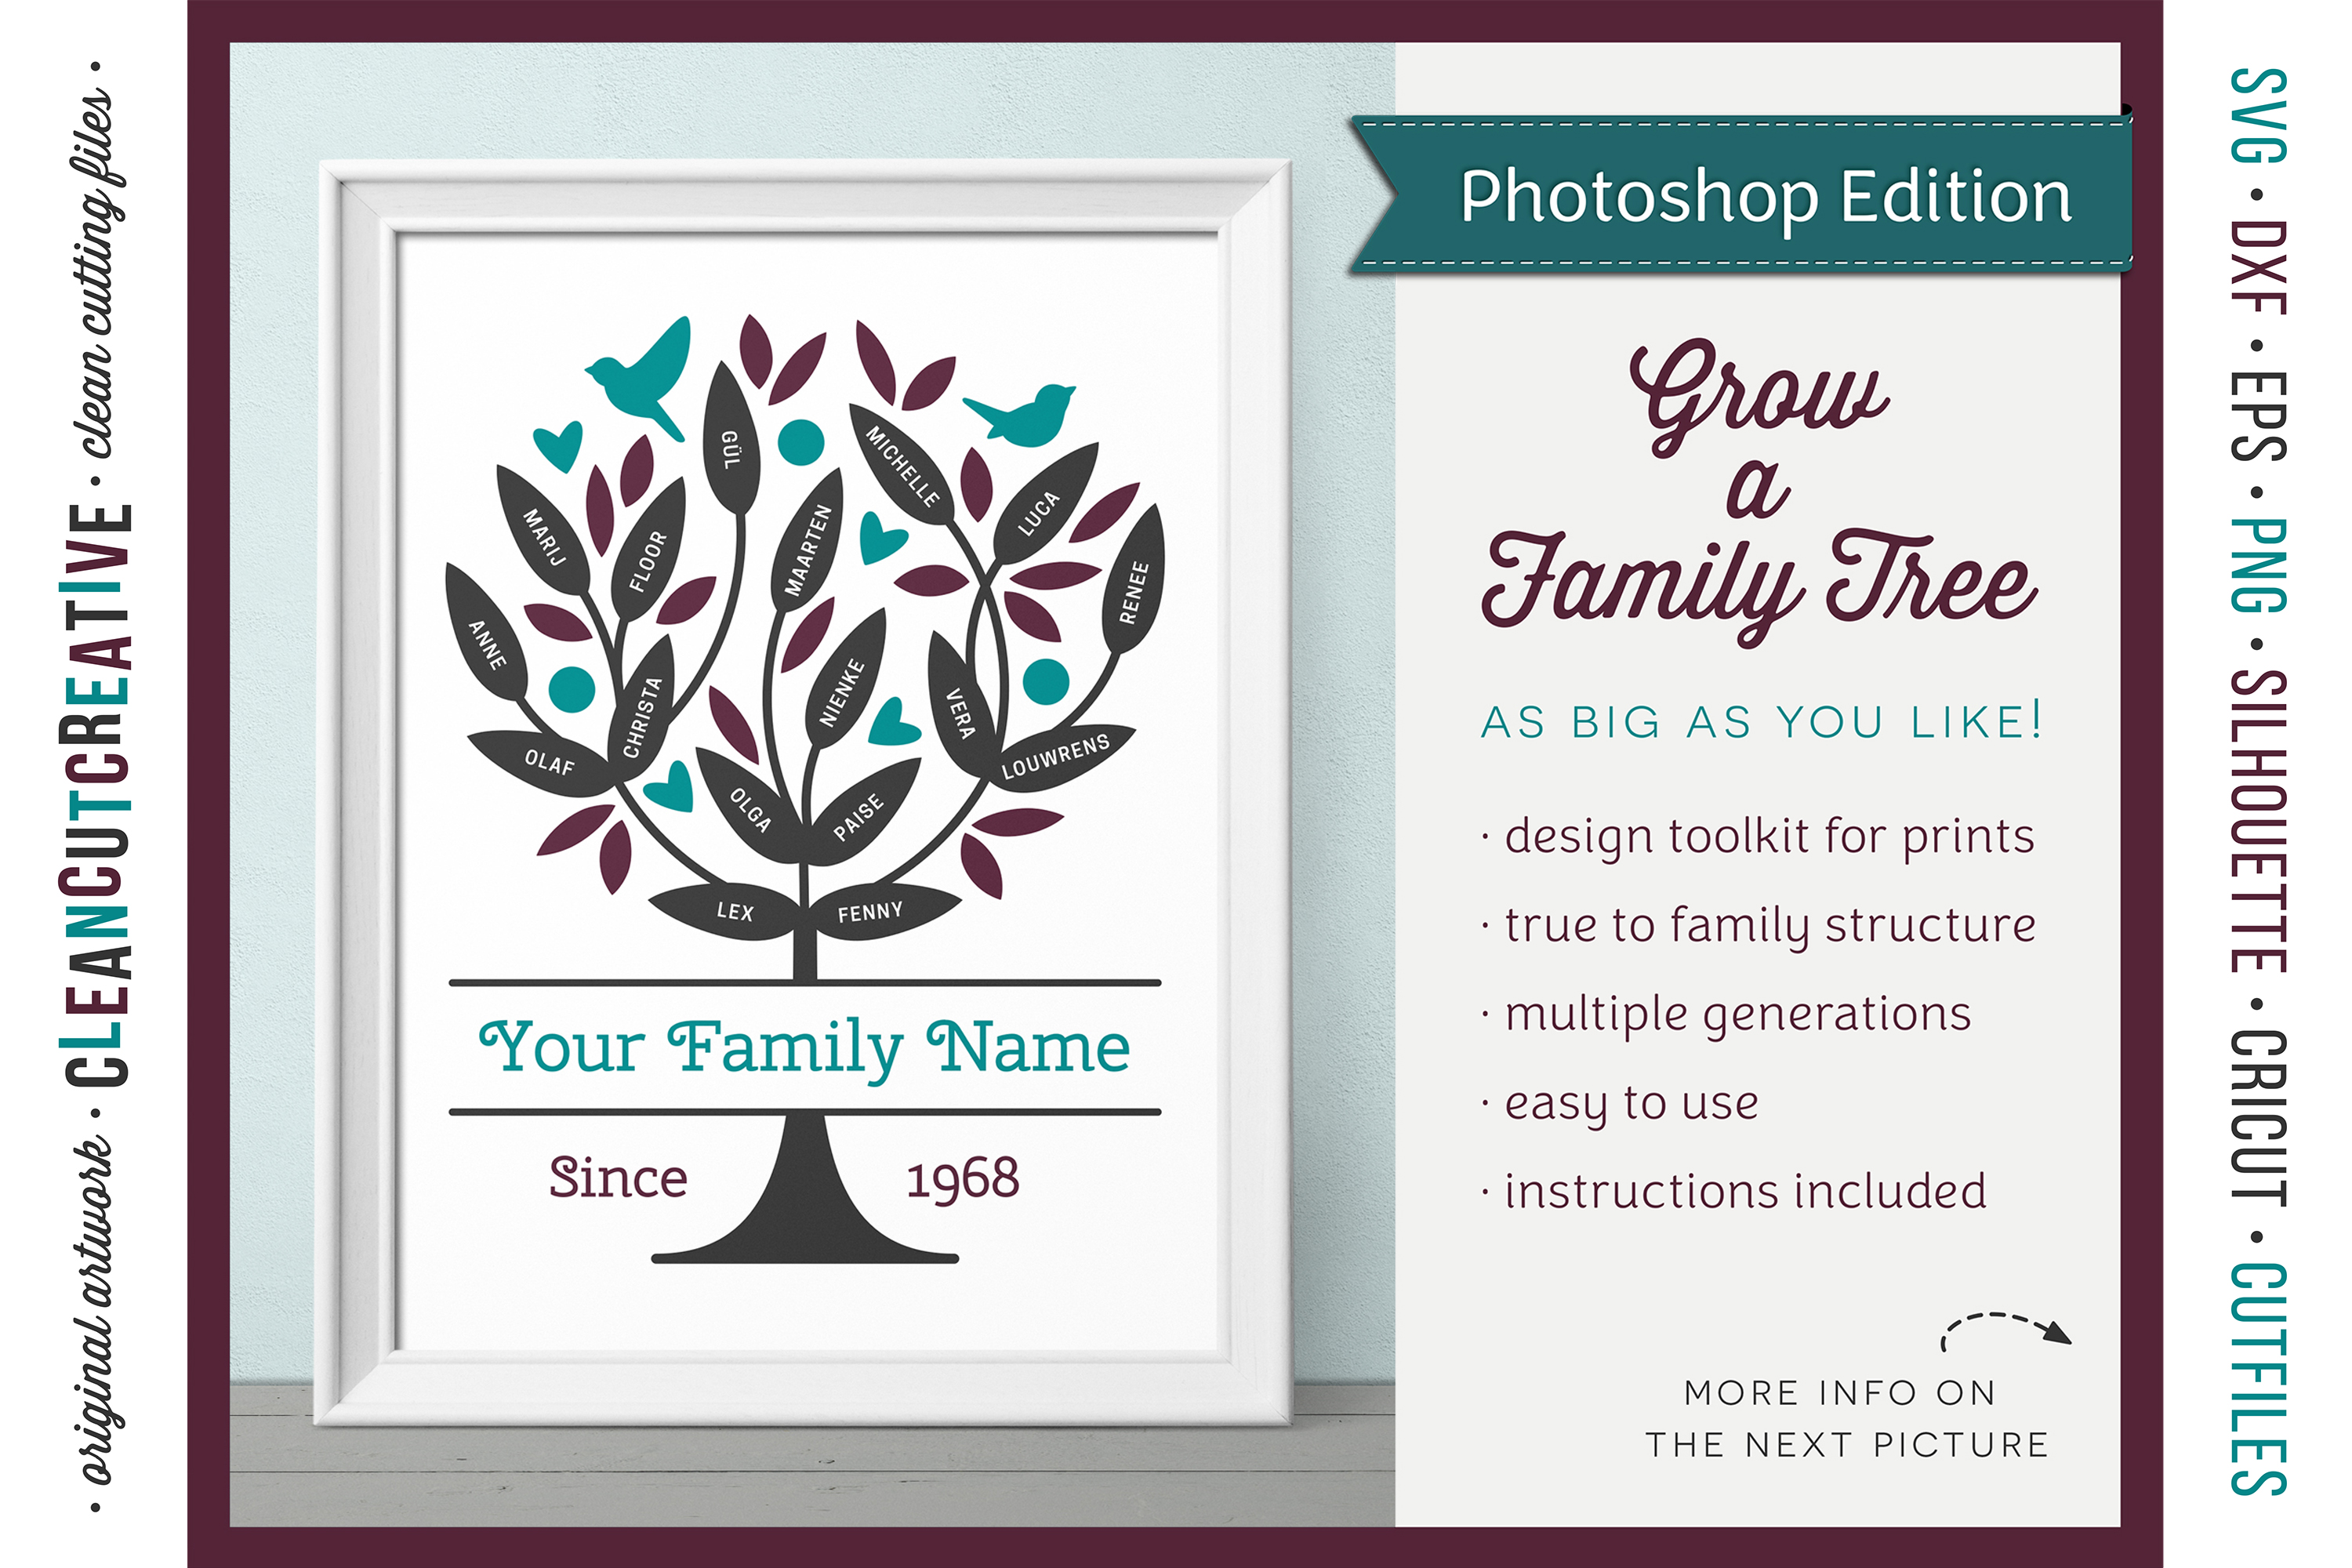 Grow a FAMILY TREE - Photoshop Edition - clipart design set example image 1